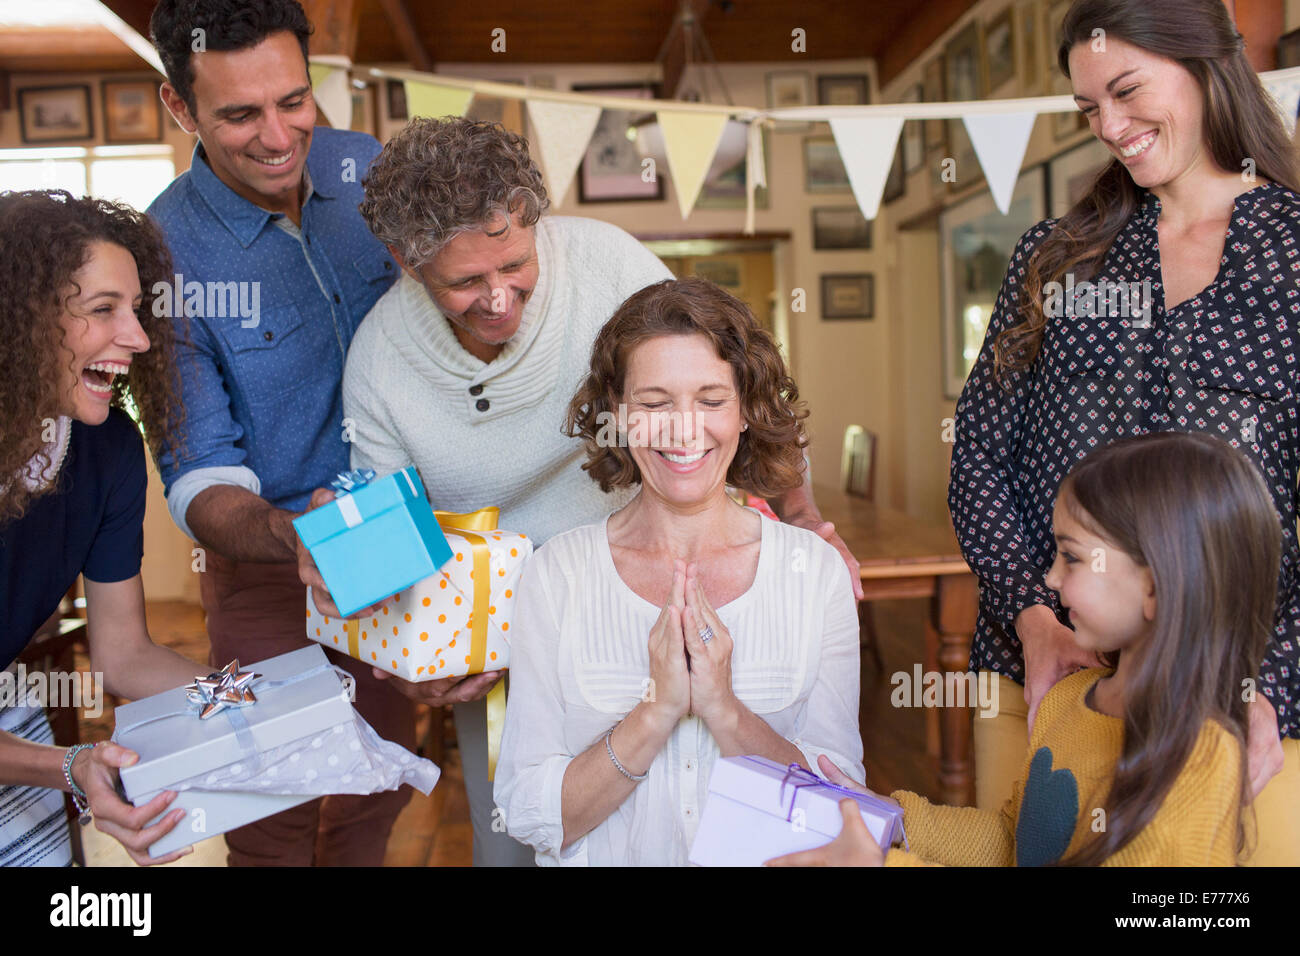 Older woman being given gift by family - Stock Image